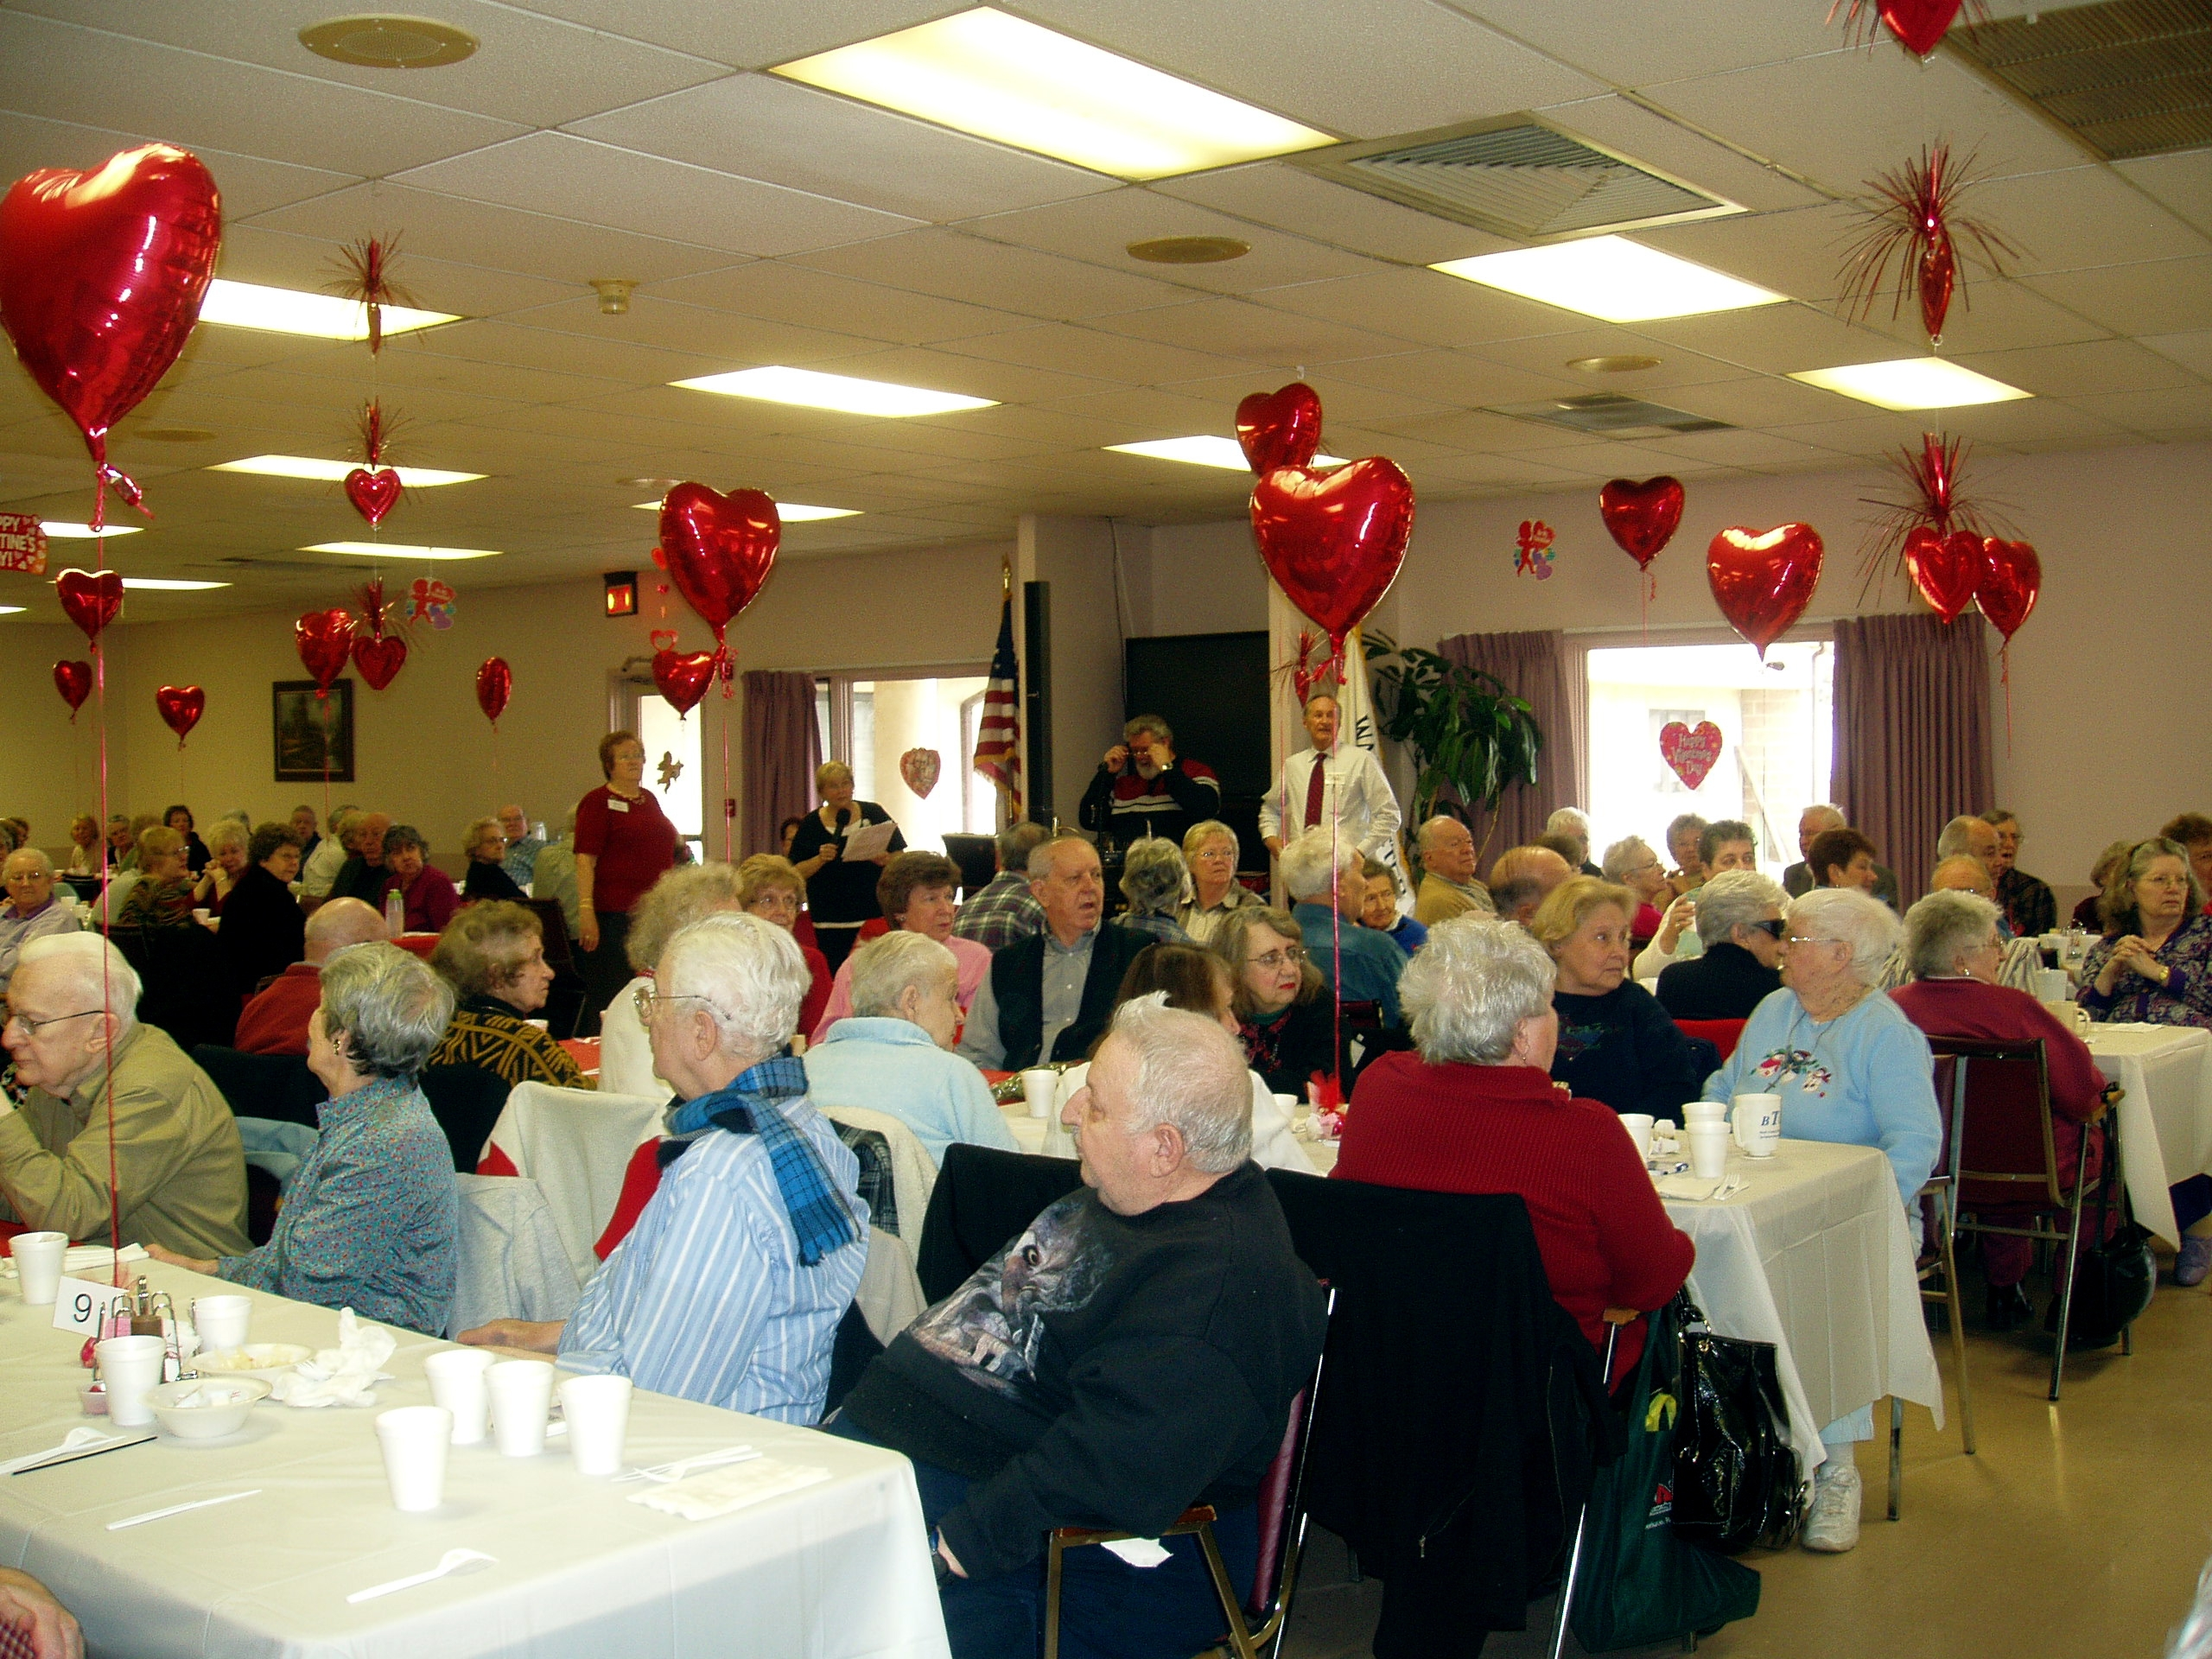 Ben Wilson Senior Center Hall Rentals In Warminster Pa